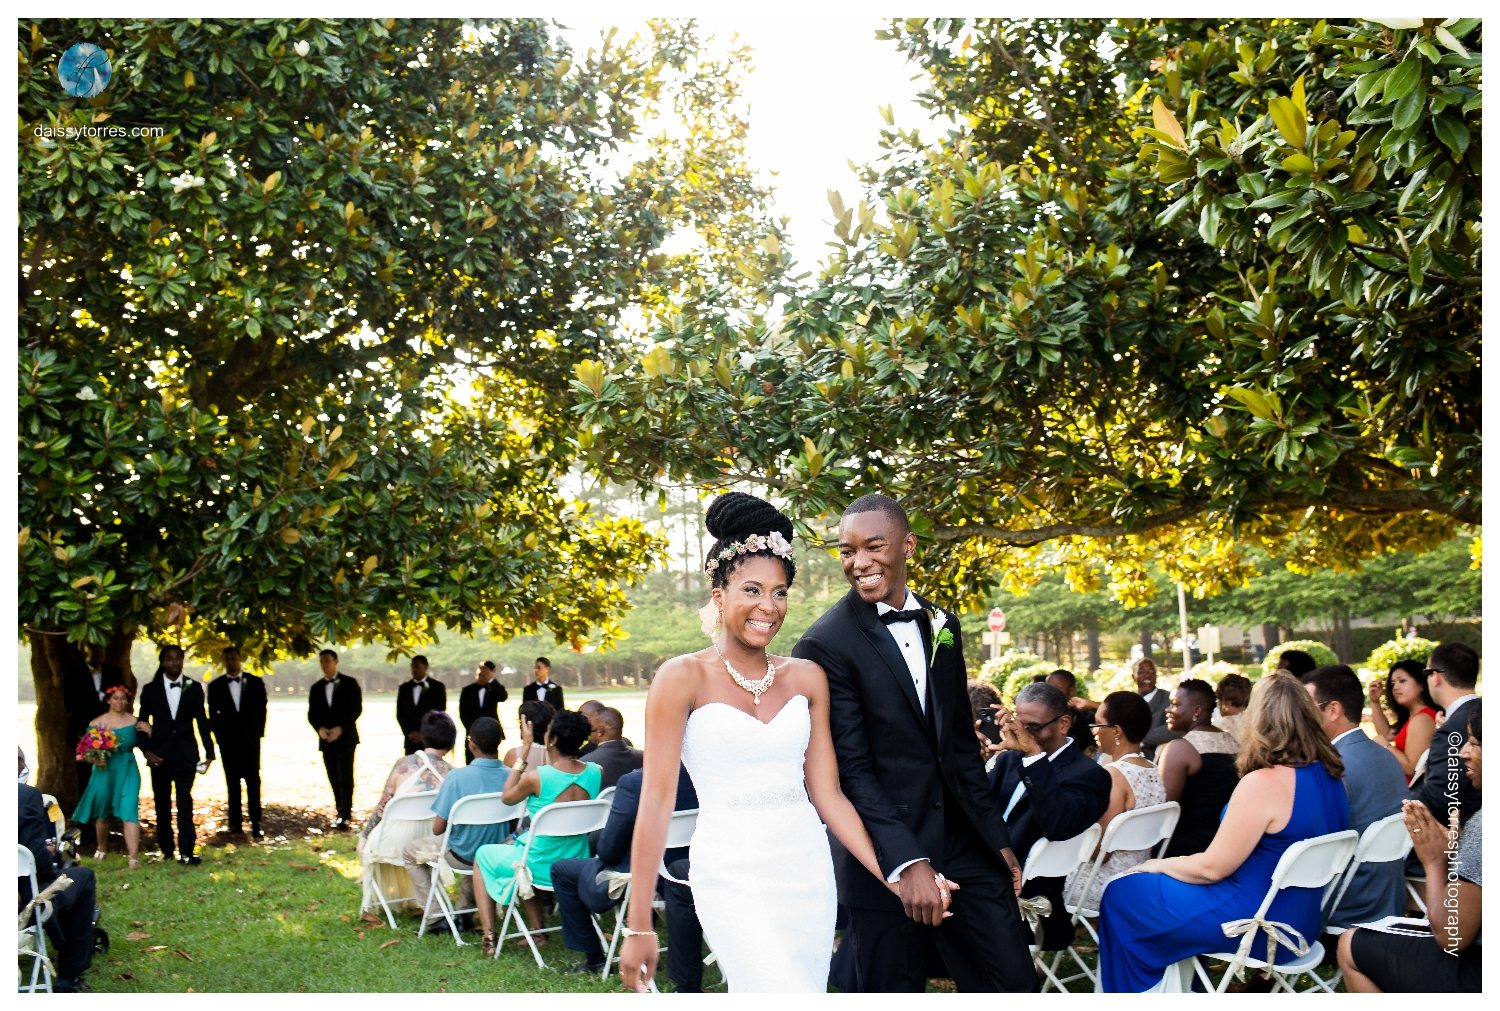 Wedding Ceremony Tips from Daissy Torres Photography